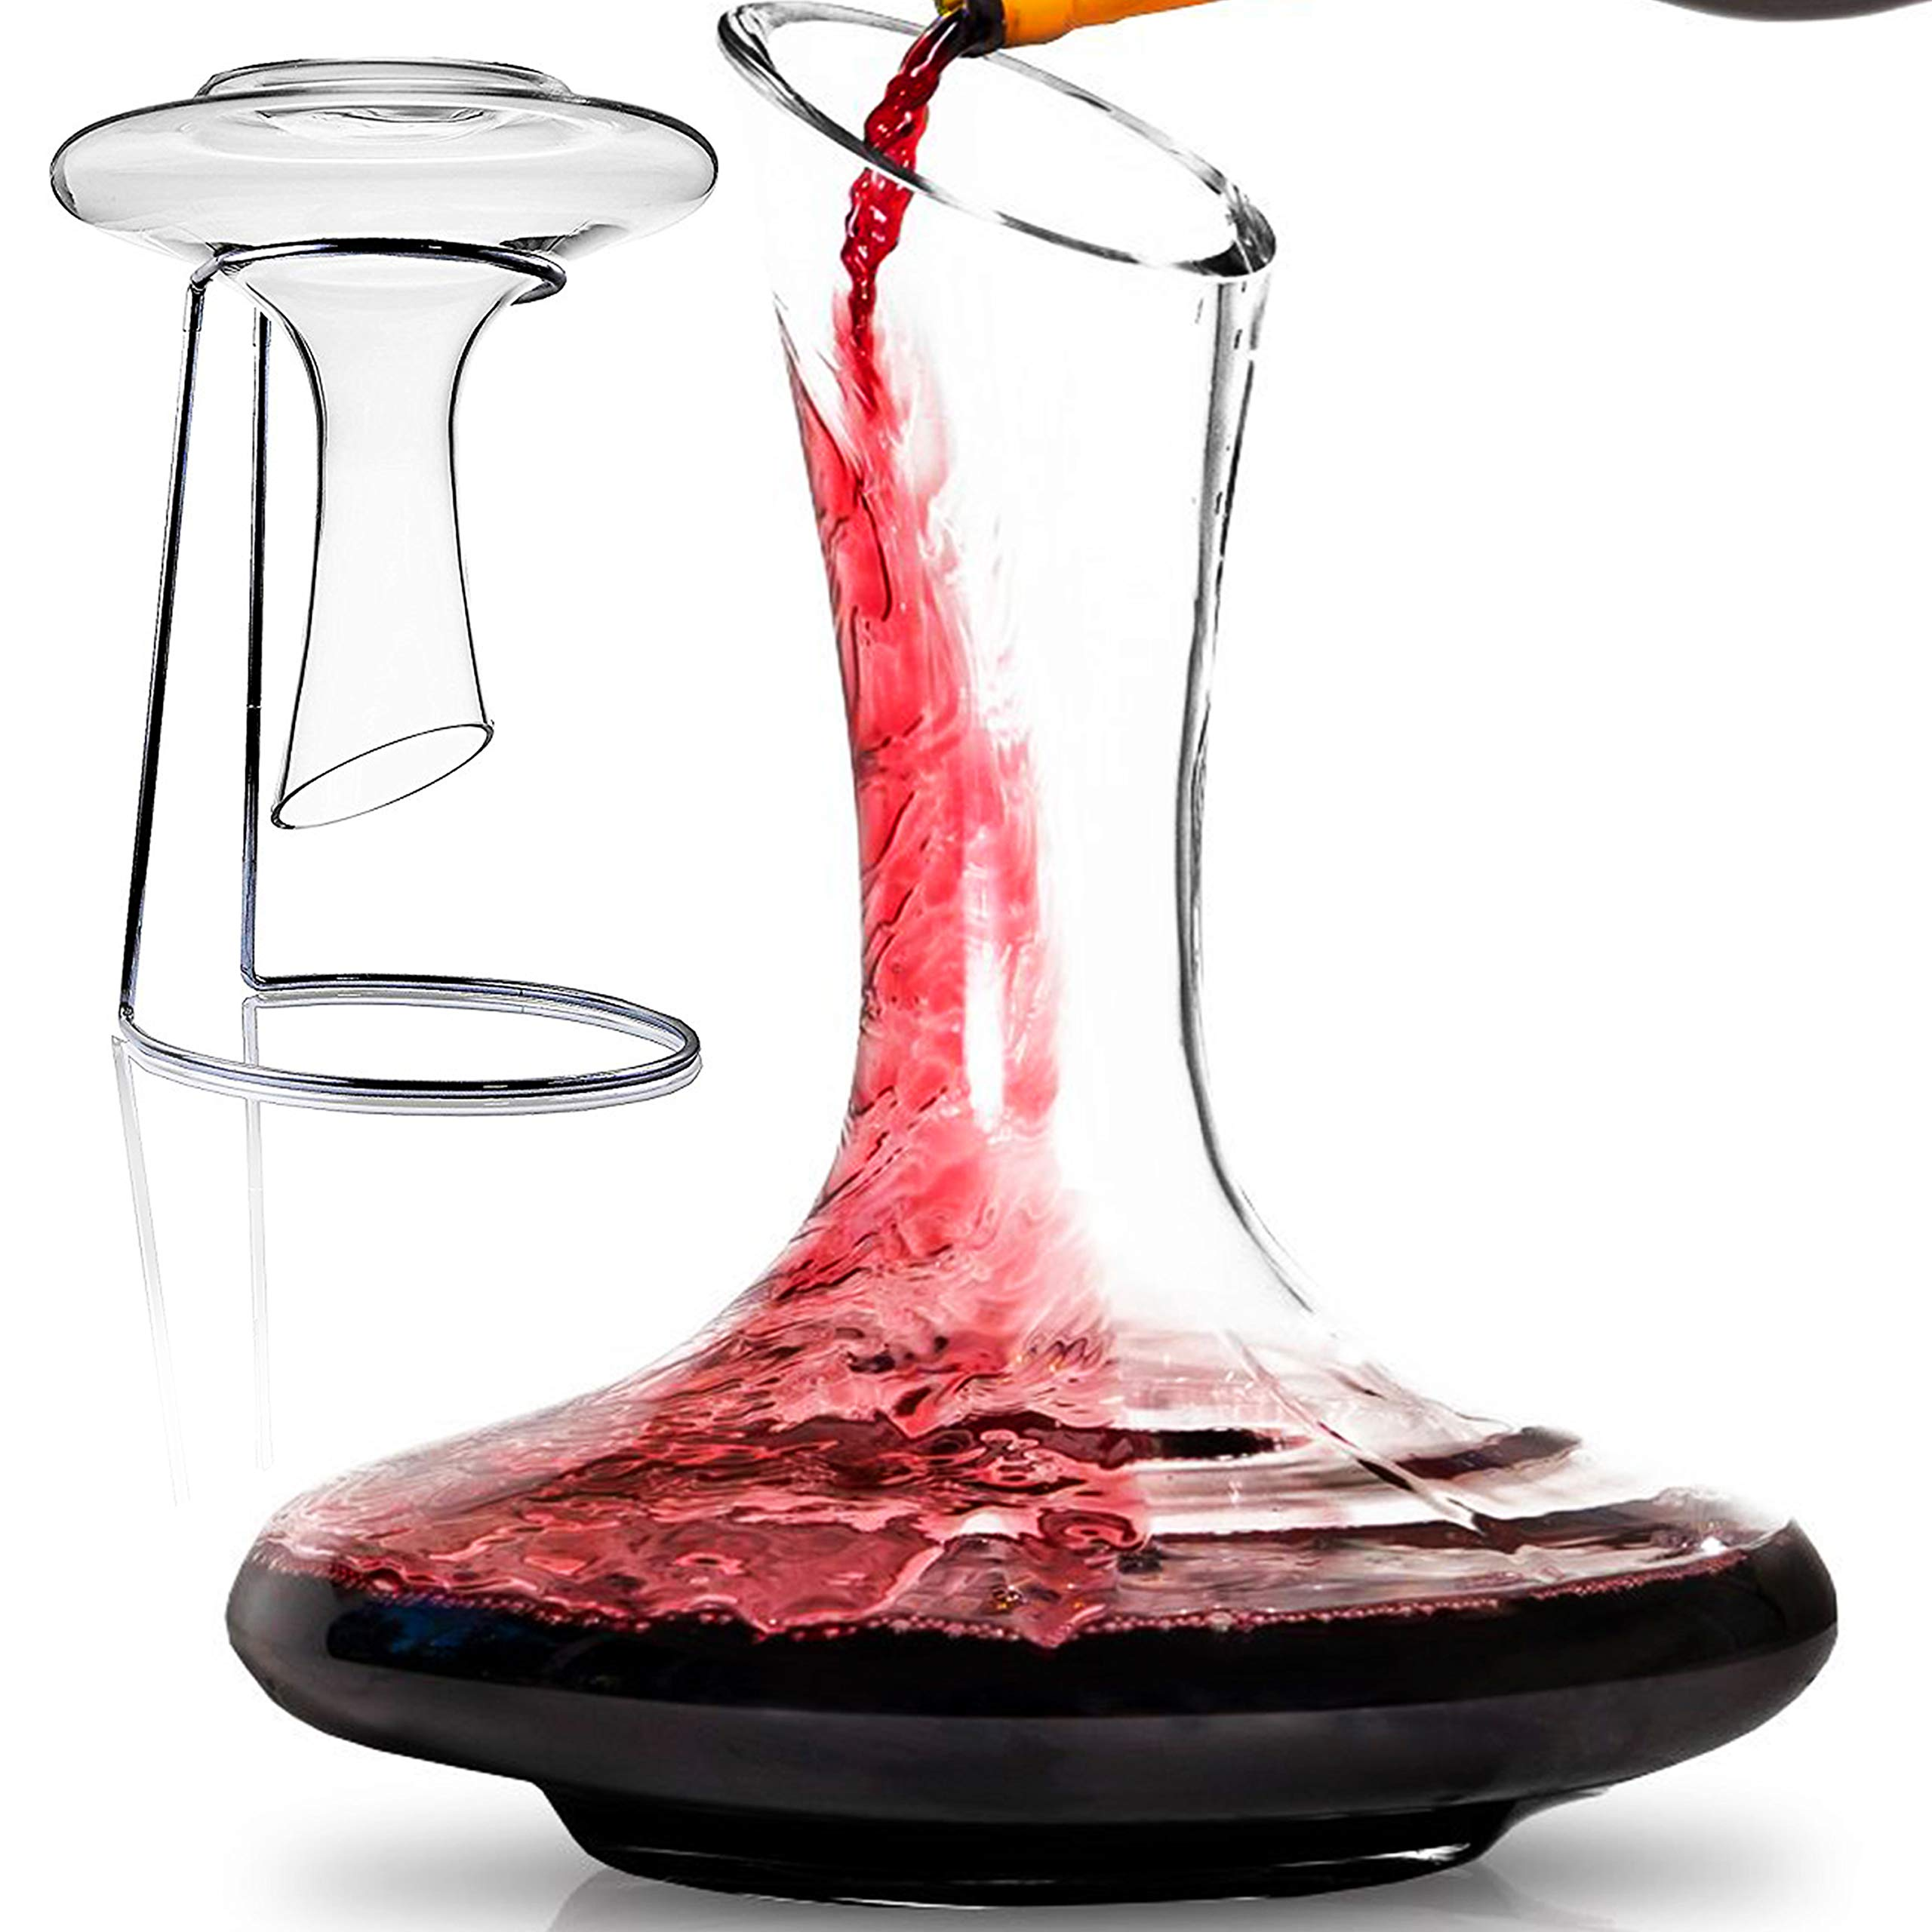 BTäT- Decanter with Stand, 60 oz Wine Decanter, Wine Carafe, Hand Blown 100% Lead Free Crystal Glass, Wine Accessories, Crystal Decanter (Wine Decanter with Stand)